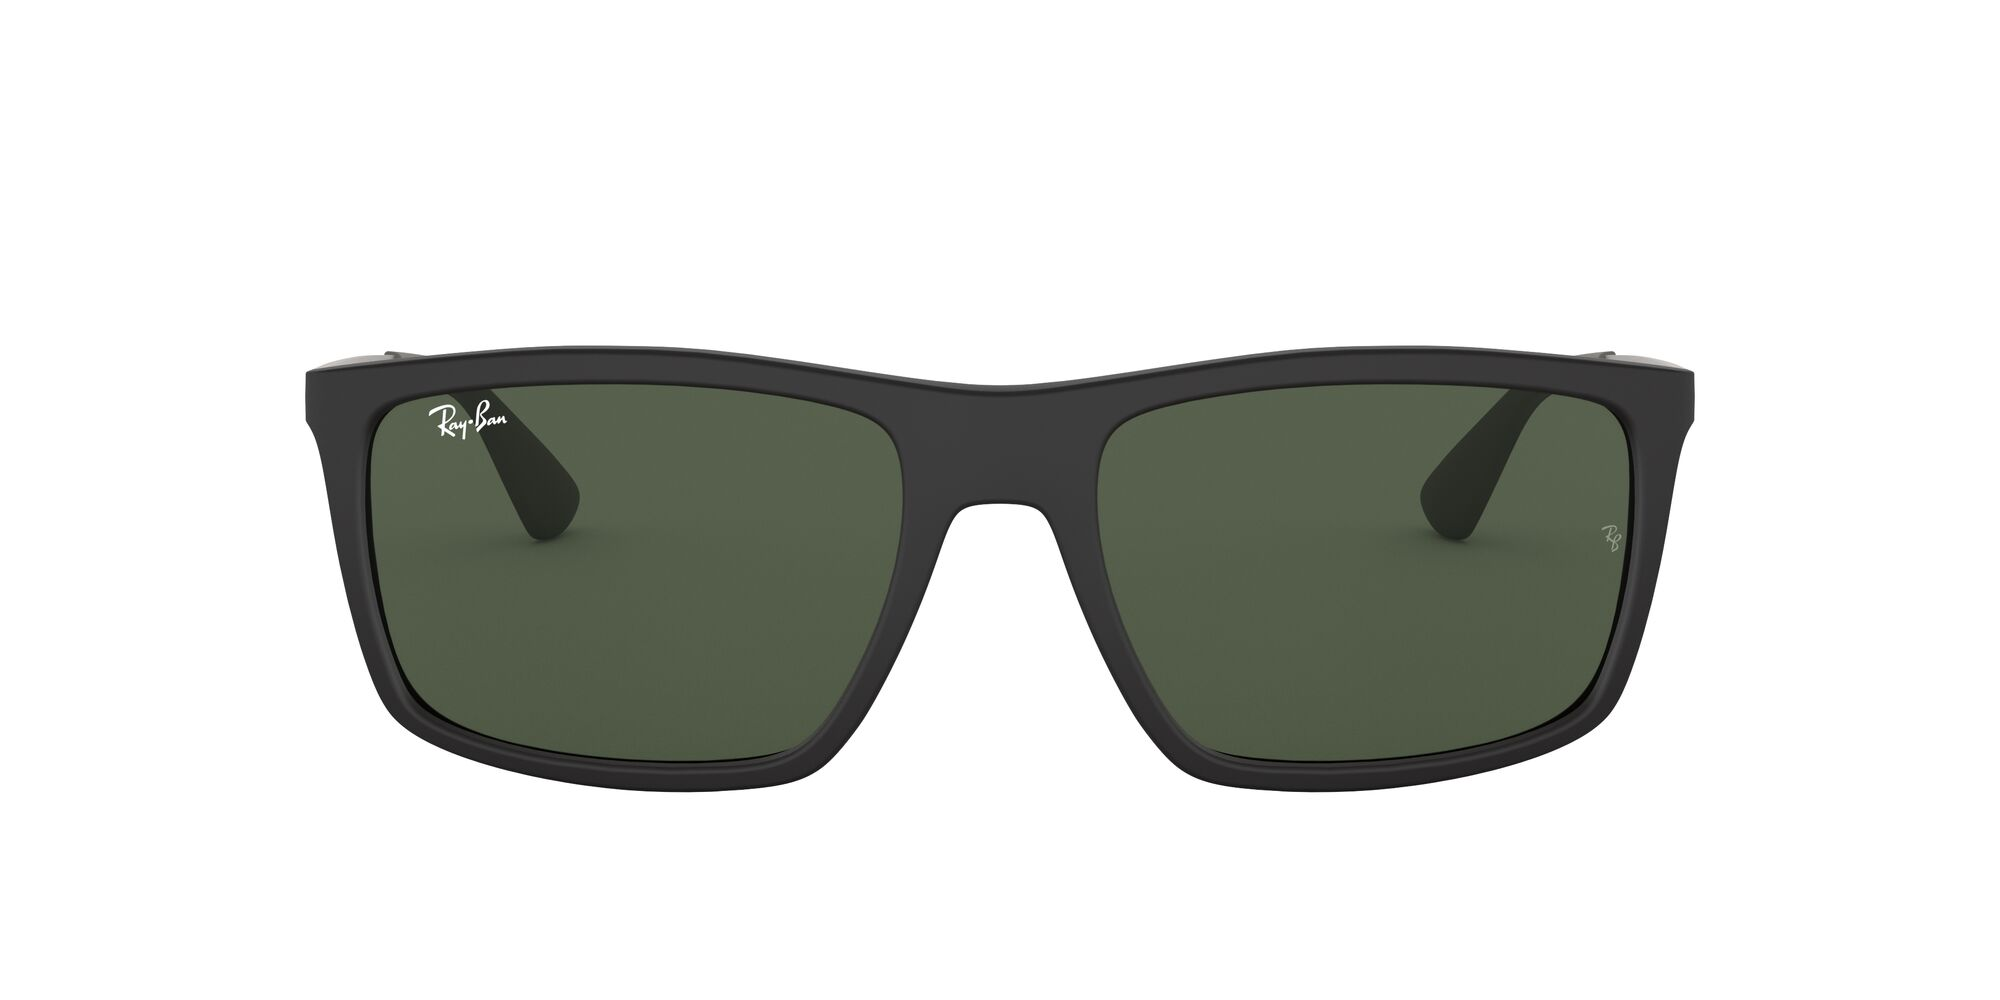 Front Ray-Ban Ray-Ban 0RB4228 601S71 58/18 Zwart/Groen